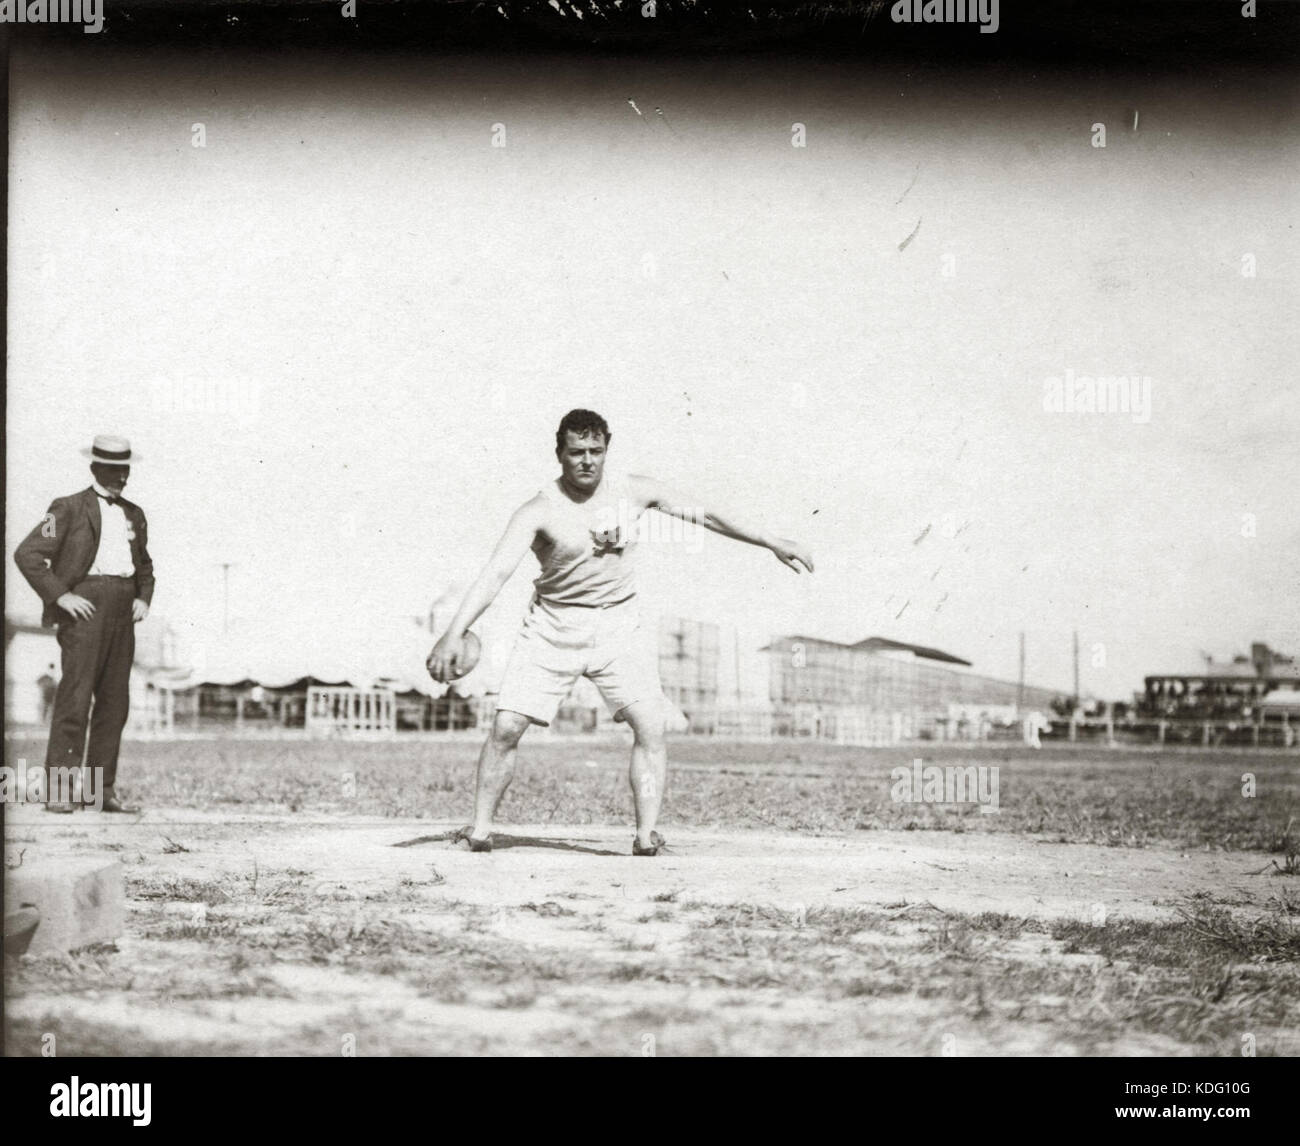 John Flannigan of the Greater New York Irish Athletic Association throwing a discus at the 1904 Olympics - Stock Image